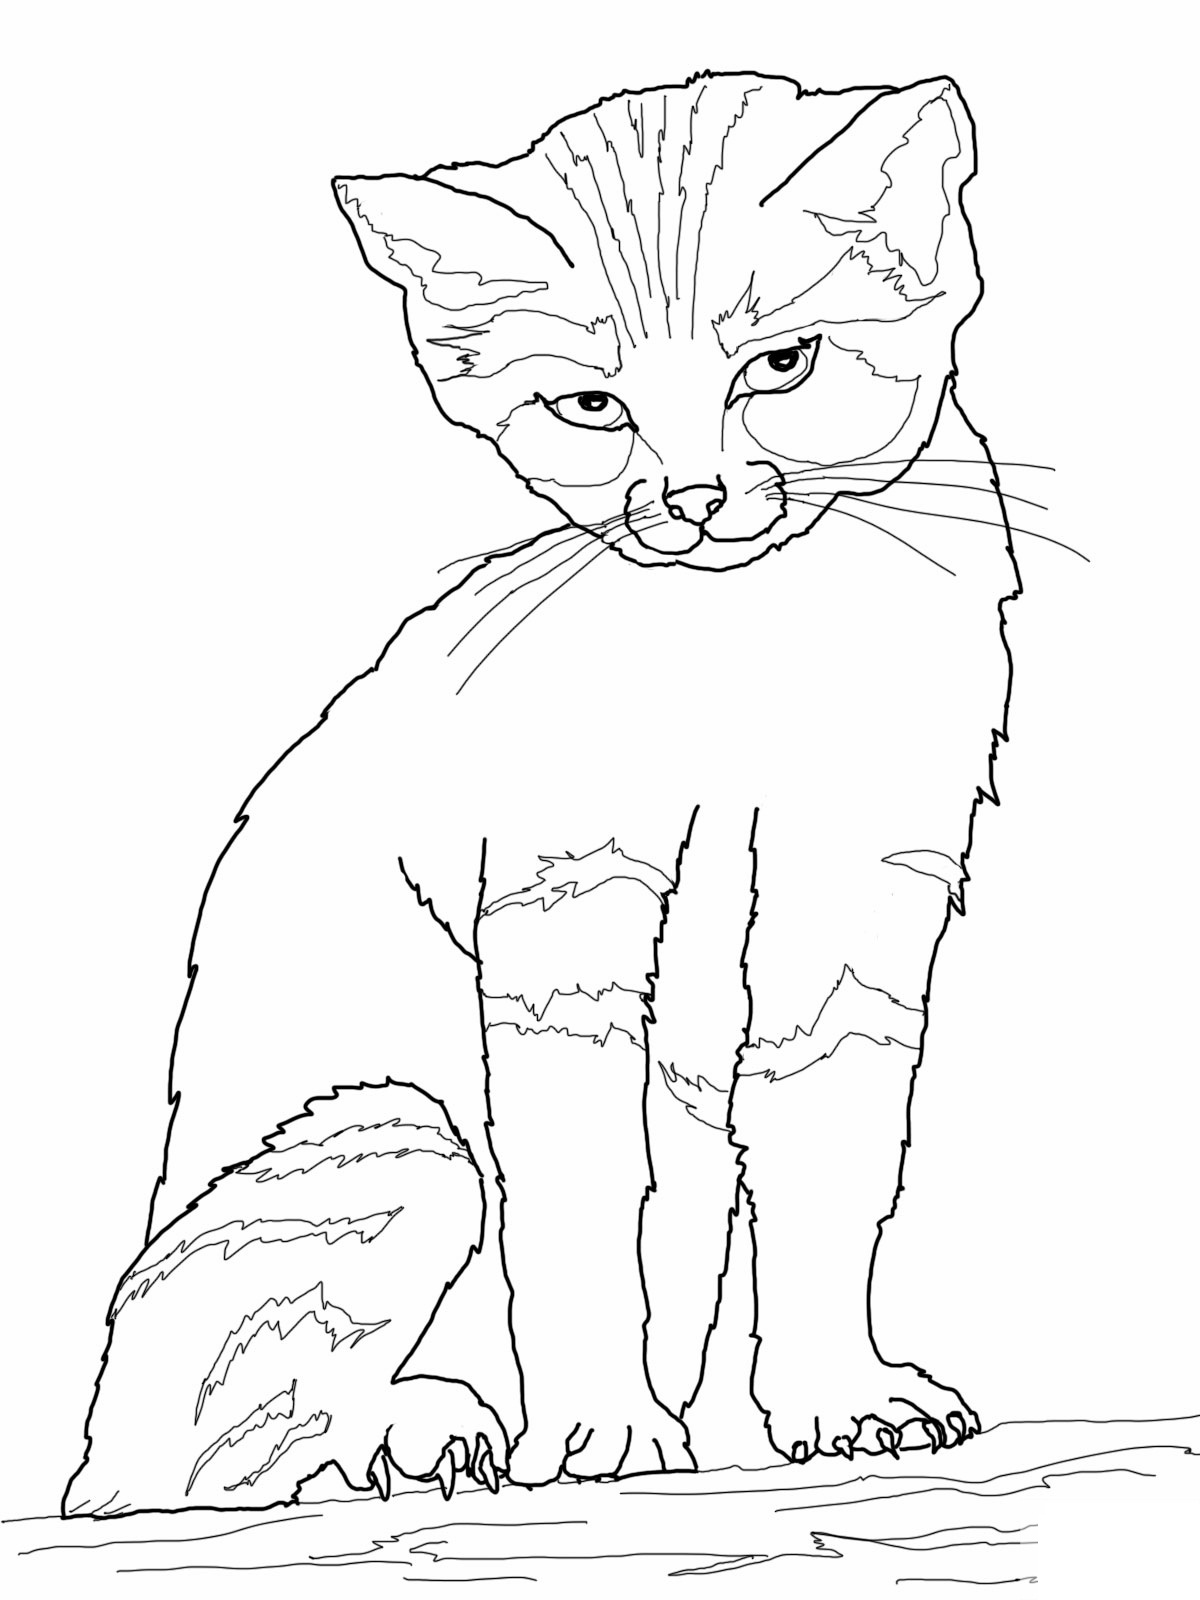 Free Coloring Pages Of Cats And Kittens At Getdrawings Com Free